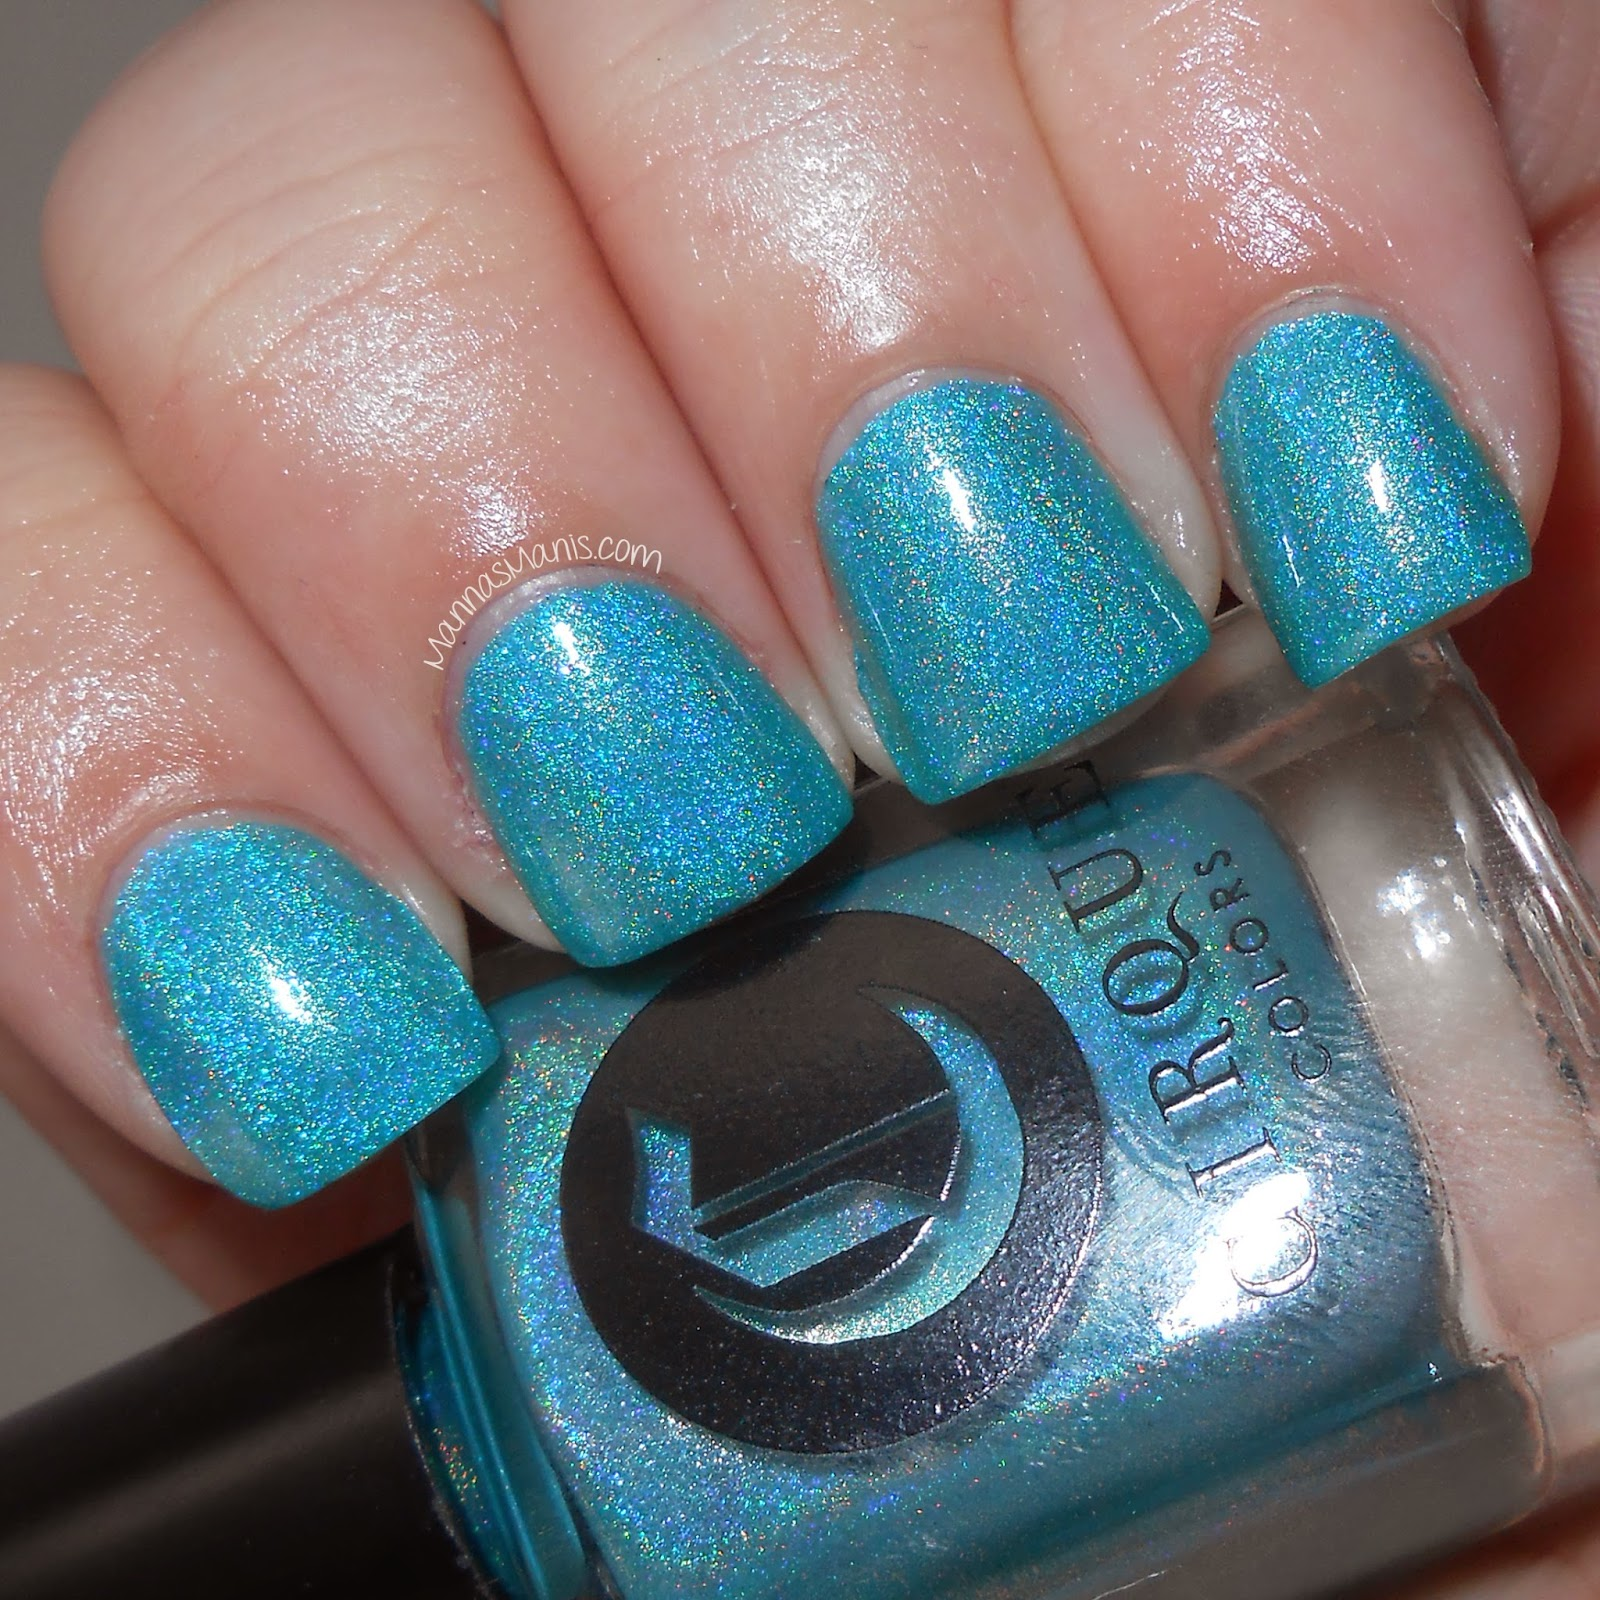 cirque colors cerrillos, a blue holographic nail polish